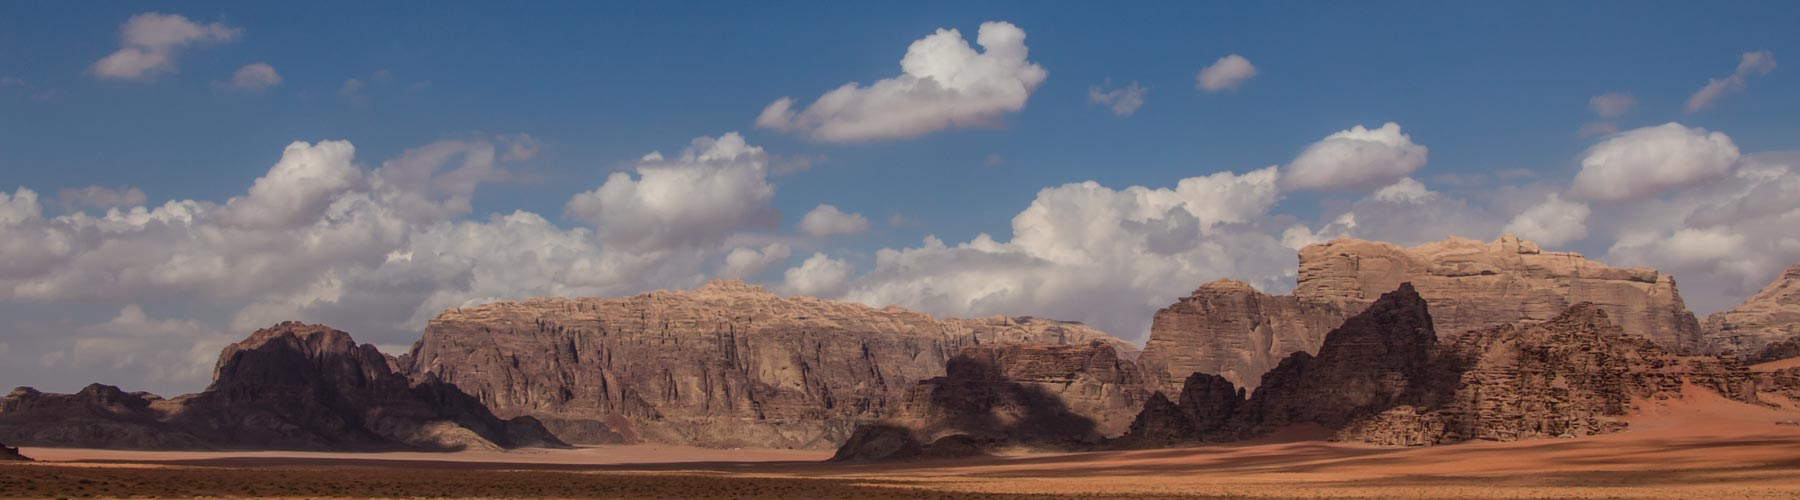 Wadi Rum weather cloudy sky